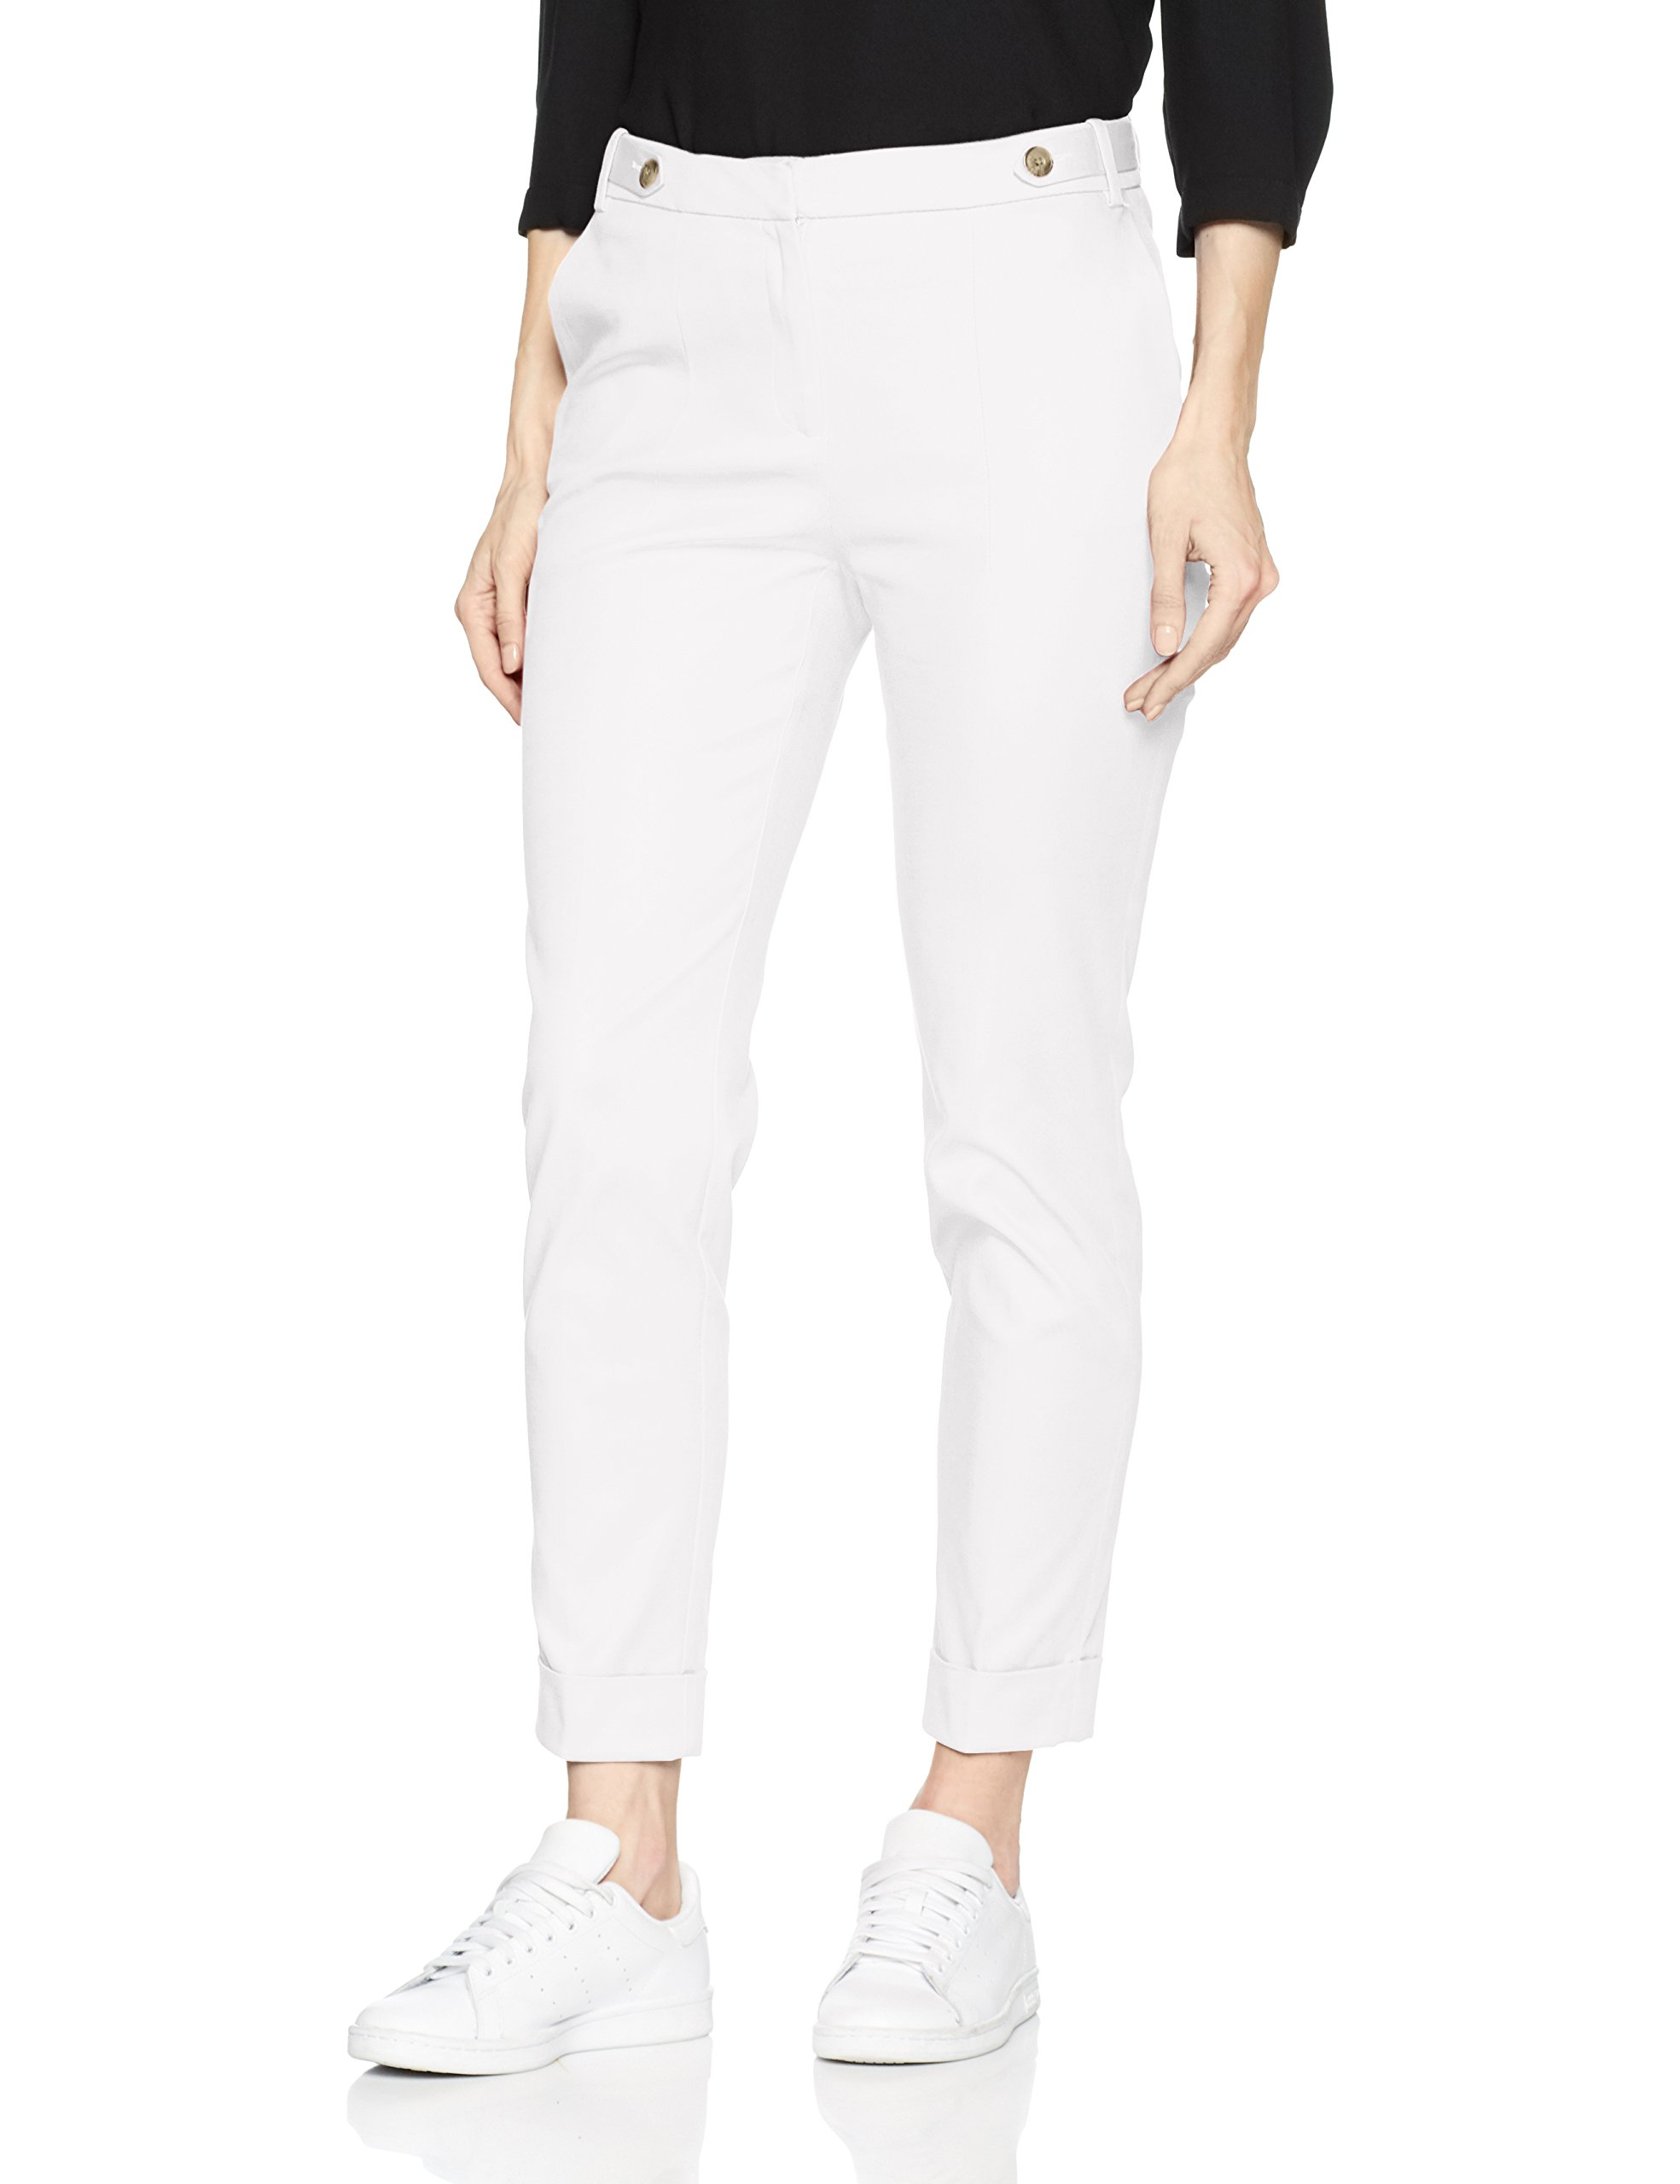 Fabricant38Femme 11040taille Collection 038eo1b009 PantalonBlancoff White Esprit IYb6gfm7yv